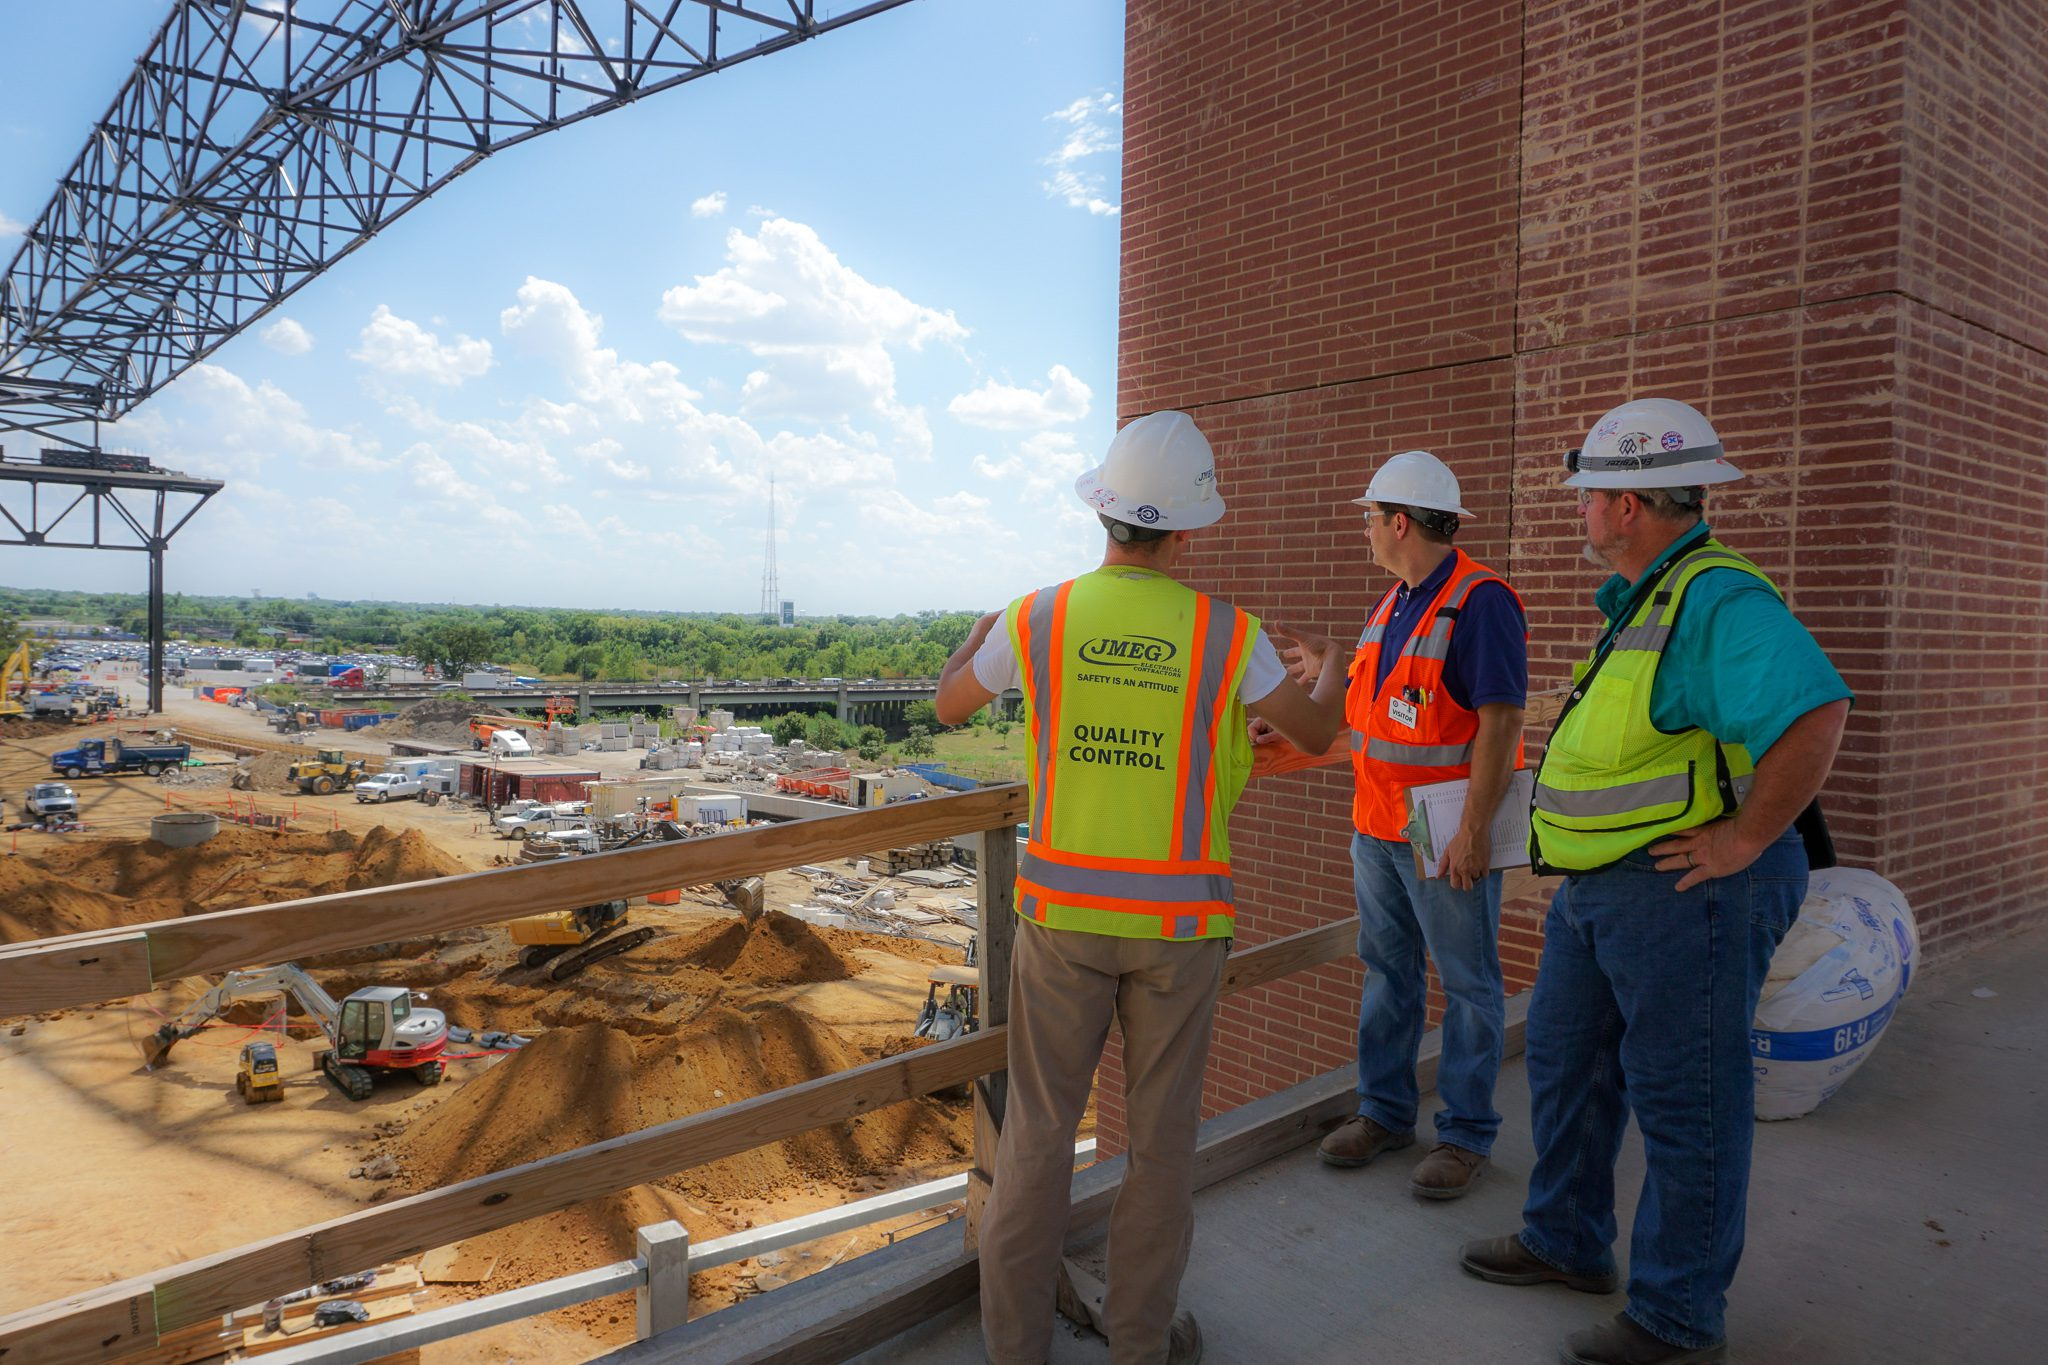 RWB Consulting Engineers overlooking the construction at Globe Life Field